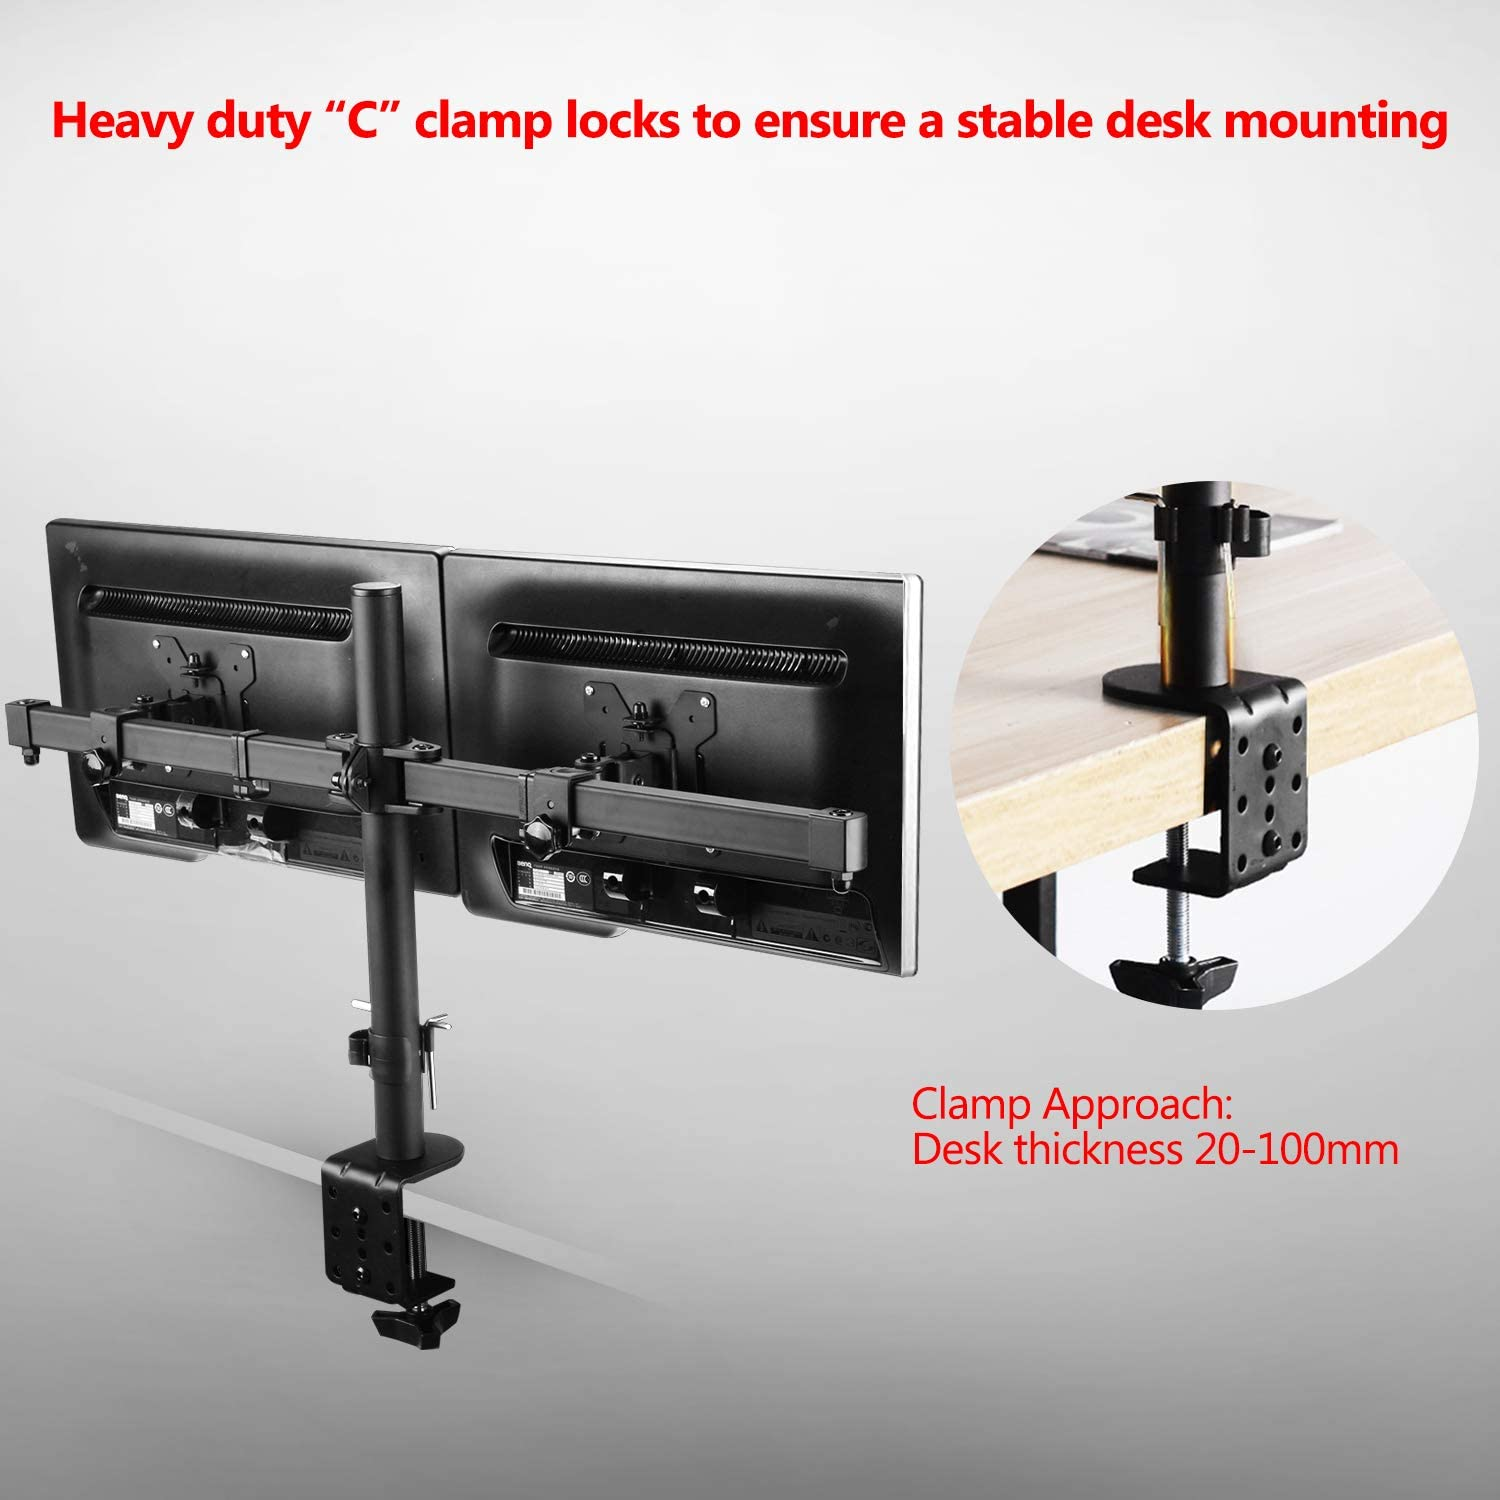 Rotate 360/° MAIDeSITe Dual Monitor Stand Adjustable Height monitor mount arm for 13-27 inch LCD LED Monitor Computer PC Screens Ergonomic Double Arms Stand Desk Mount Bracket Tilt 90/° Swivel 180/°